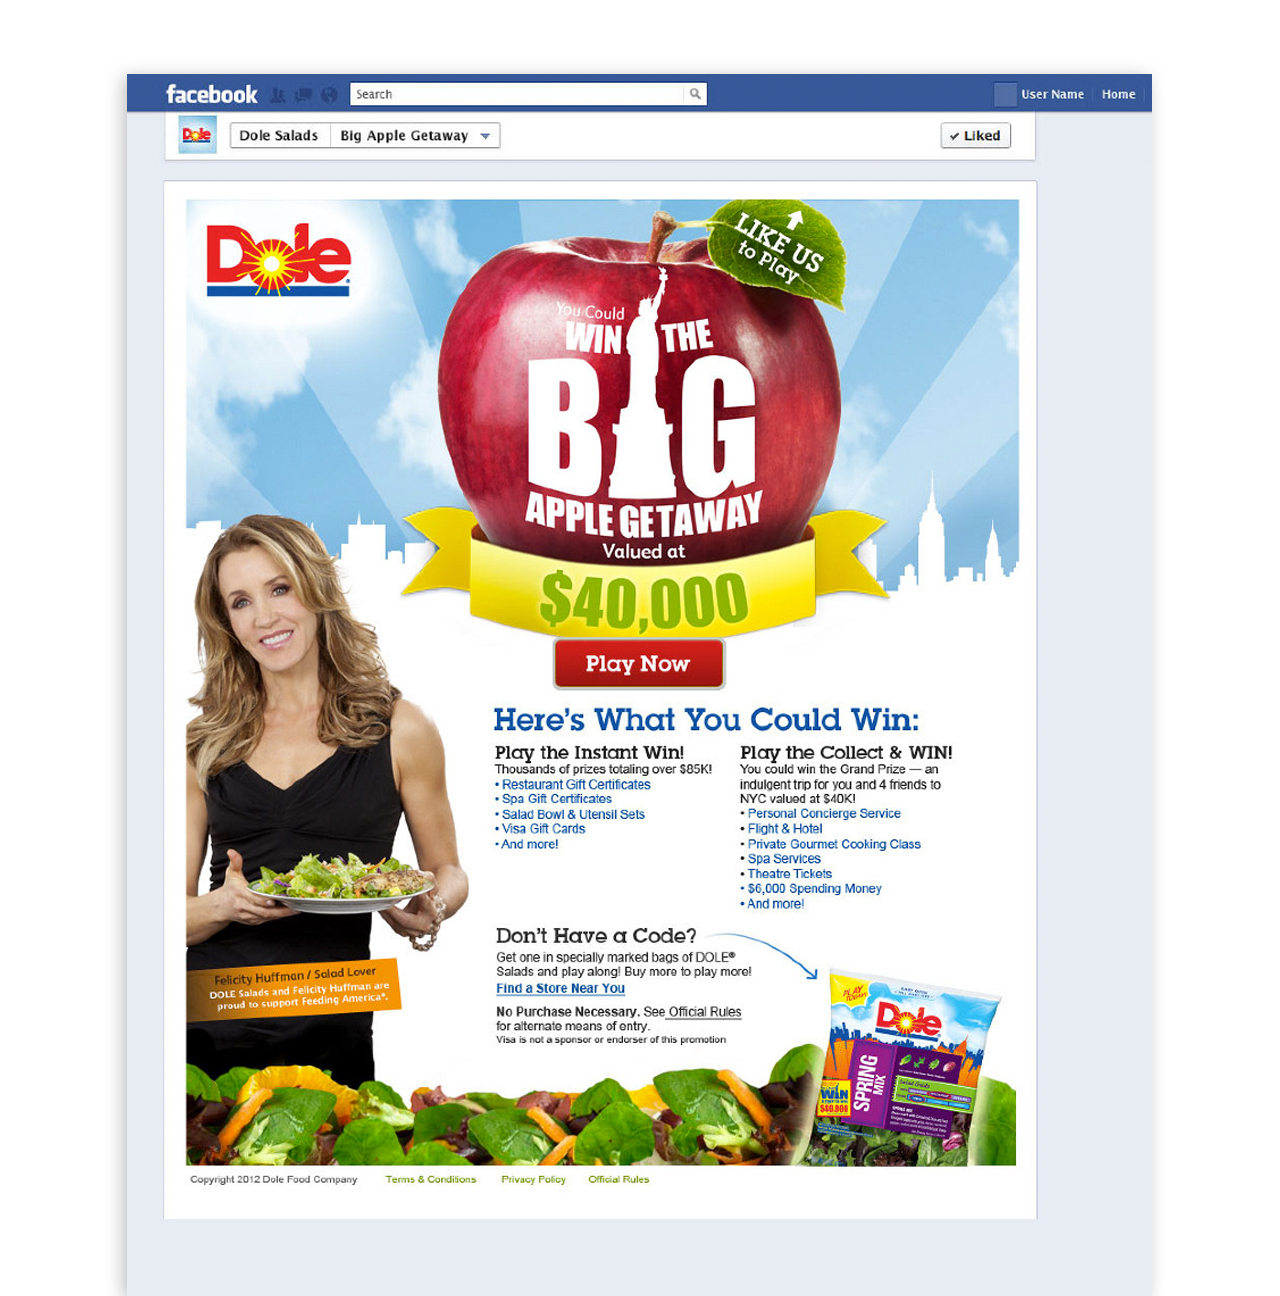 Dole_Facebook1.png